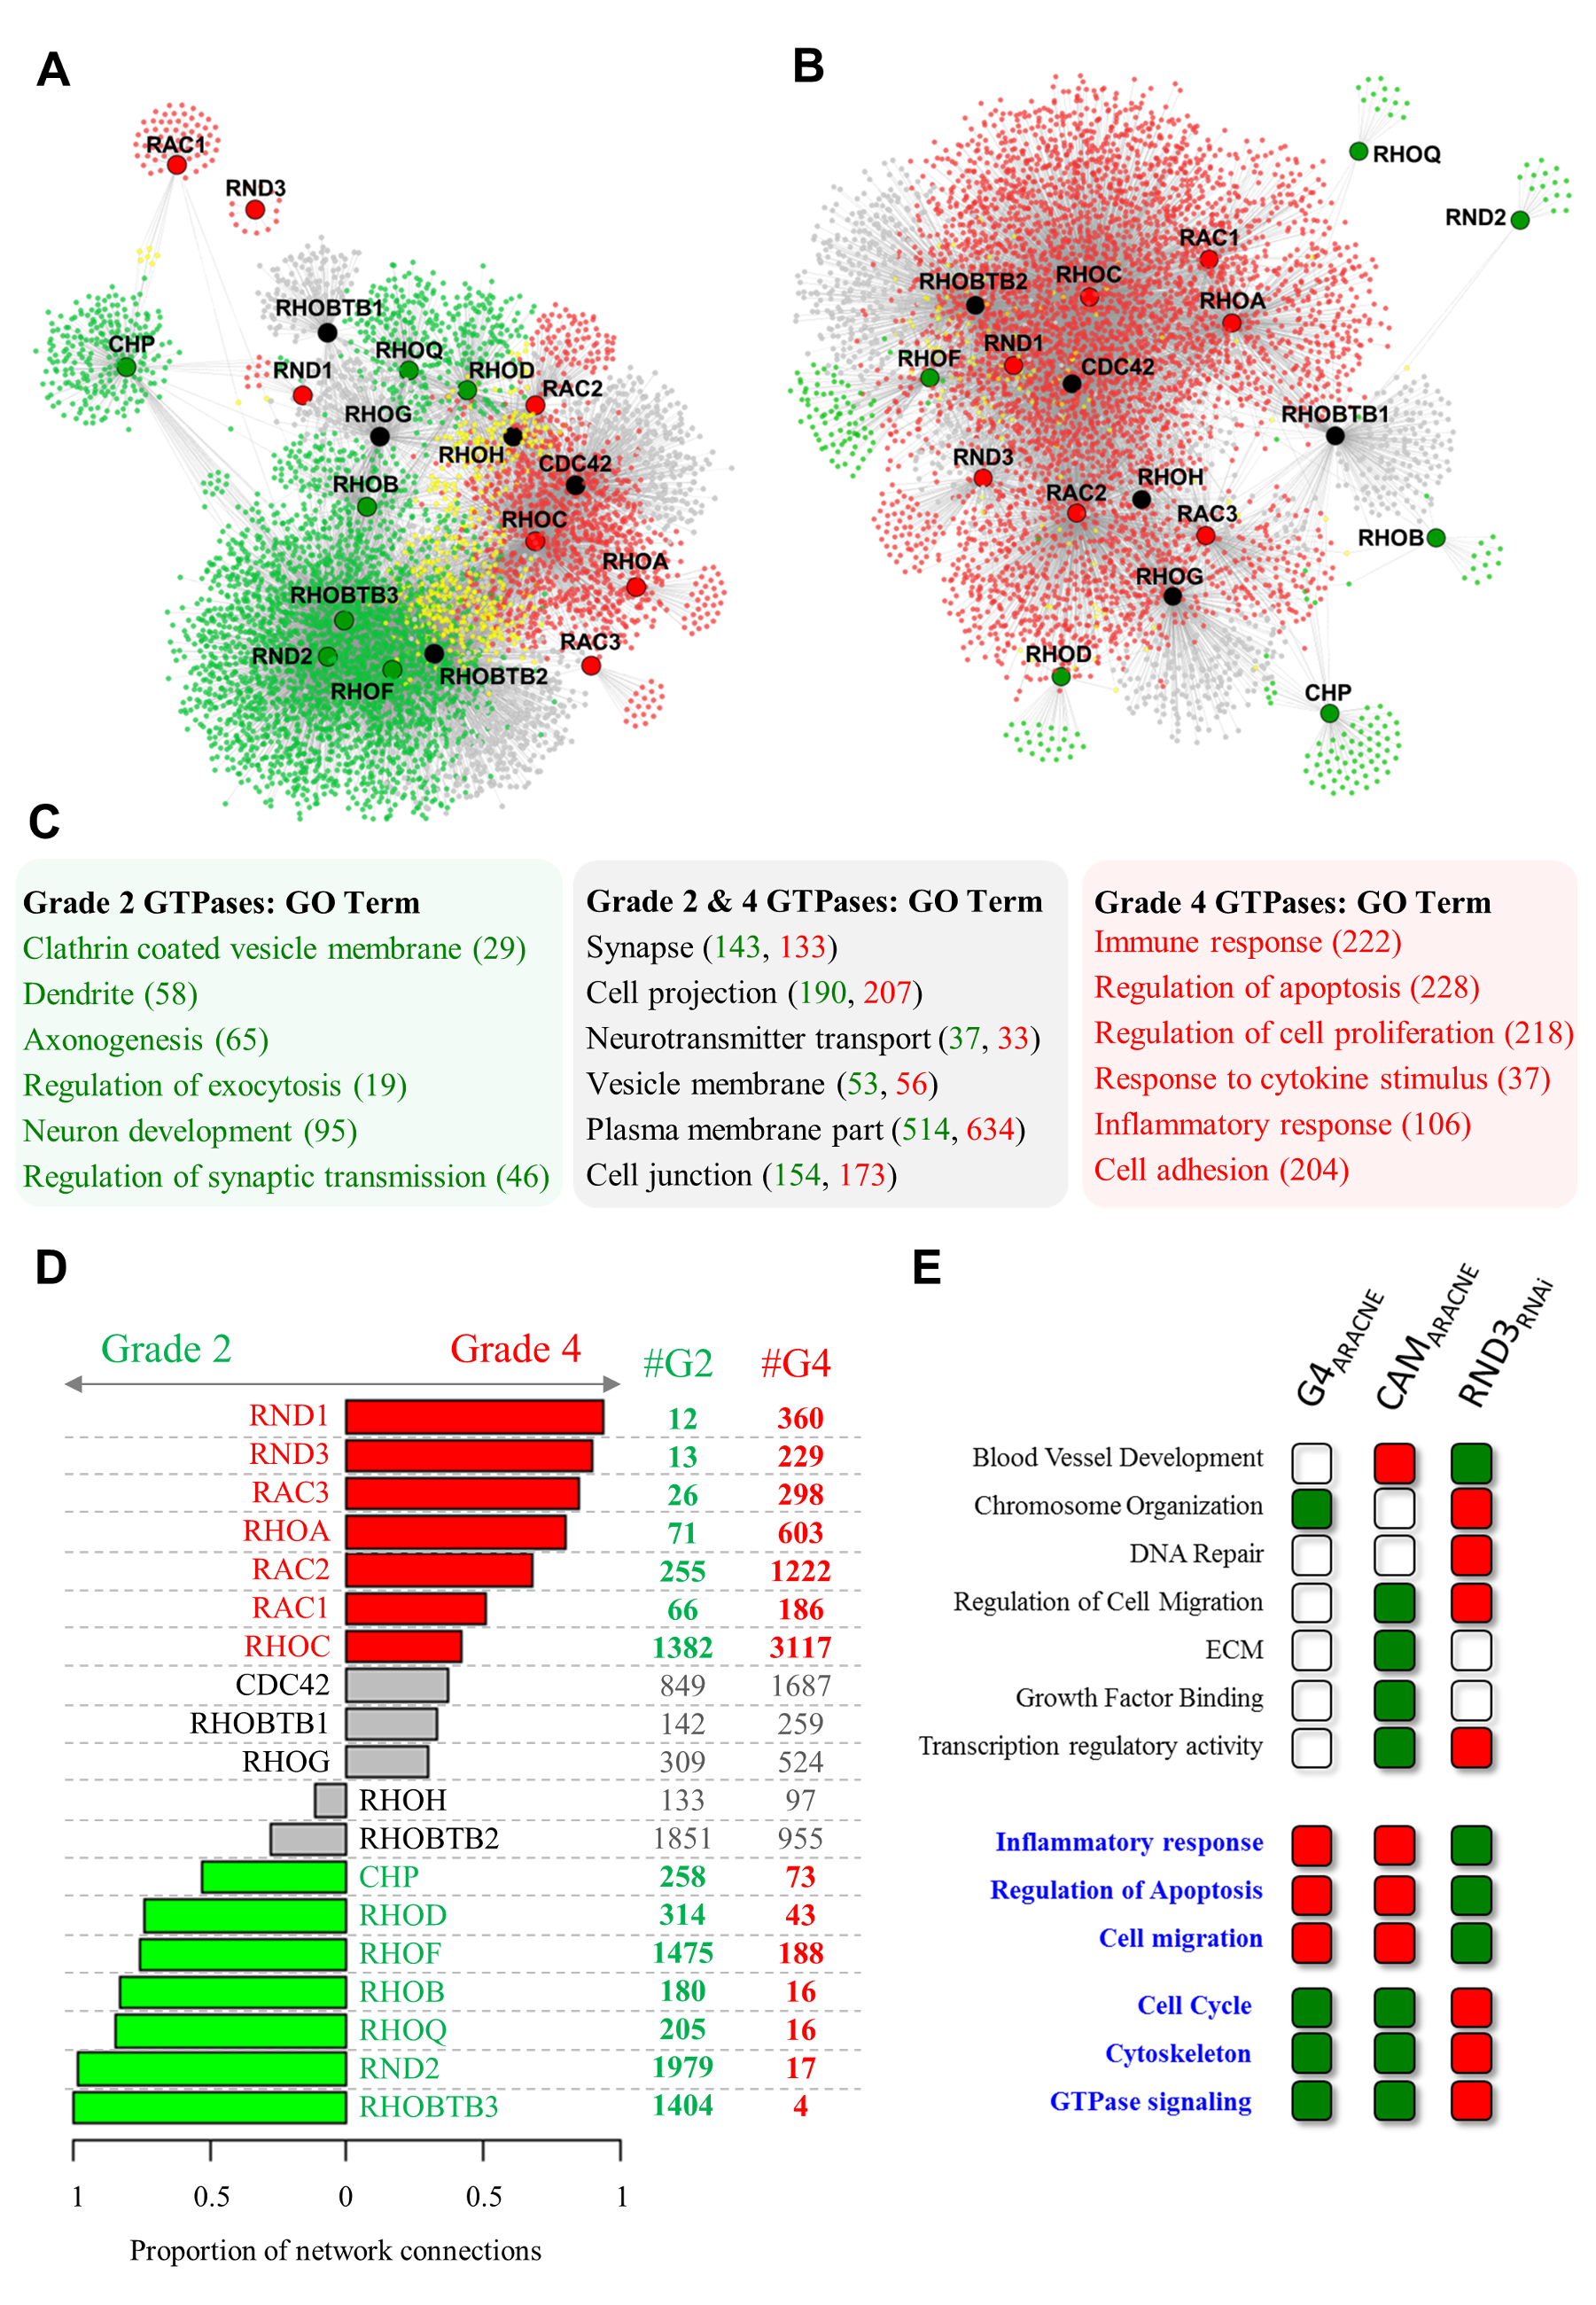 Transcriptional networks reveal two groups of Rho GTPases with divergent connectivity in grade II and grade IV glioma.